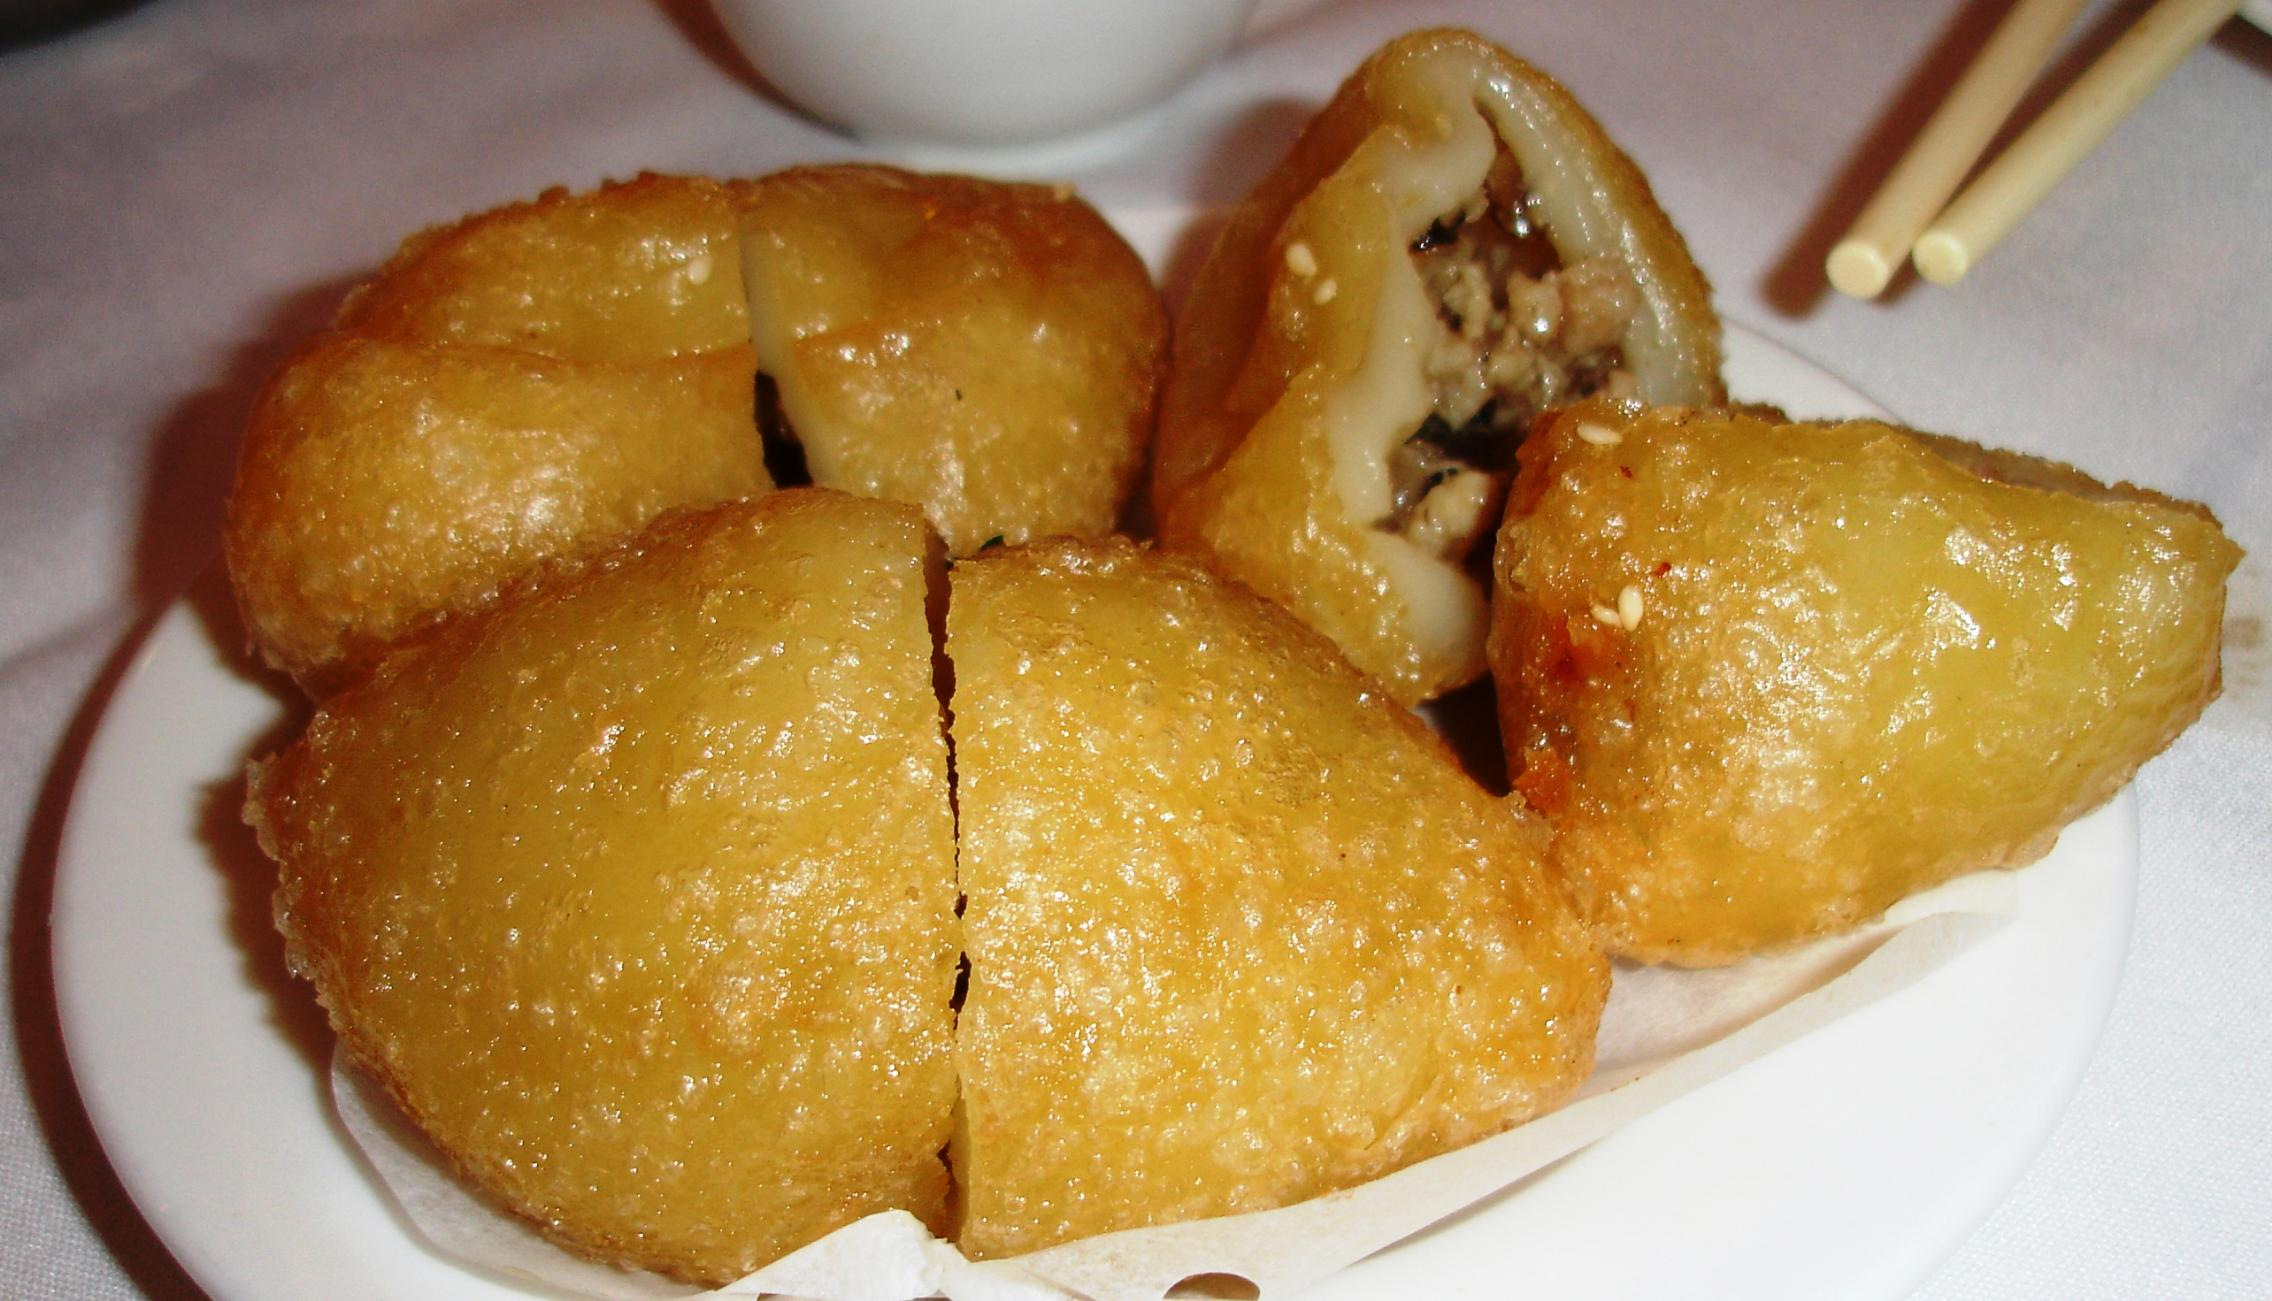 Fried glutinous rice dumplings have a sticky-chewy shell surrounding saucy pork and mushrooms.